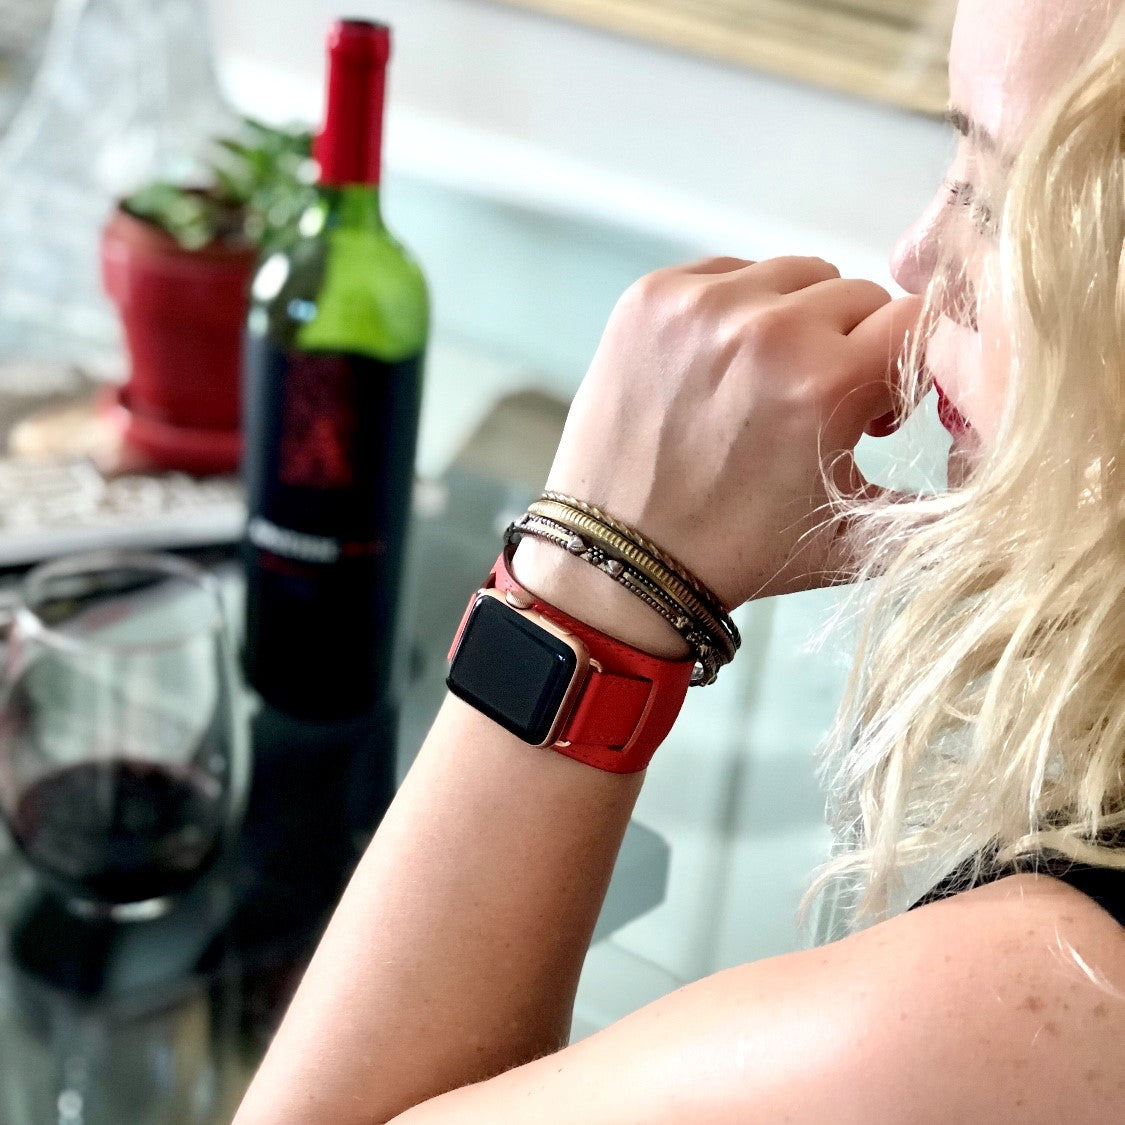 Juxli Home Red Leather Apple Watch Cuff on Woman Drinking Red Wine